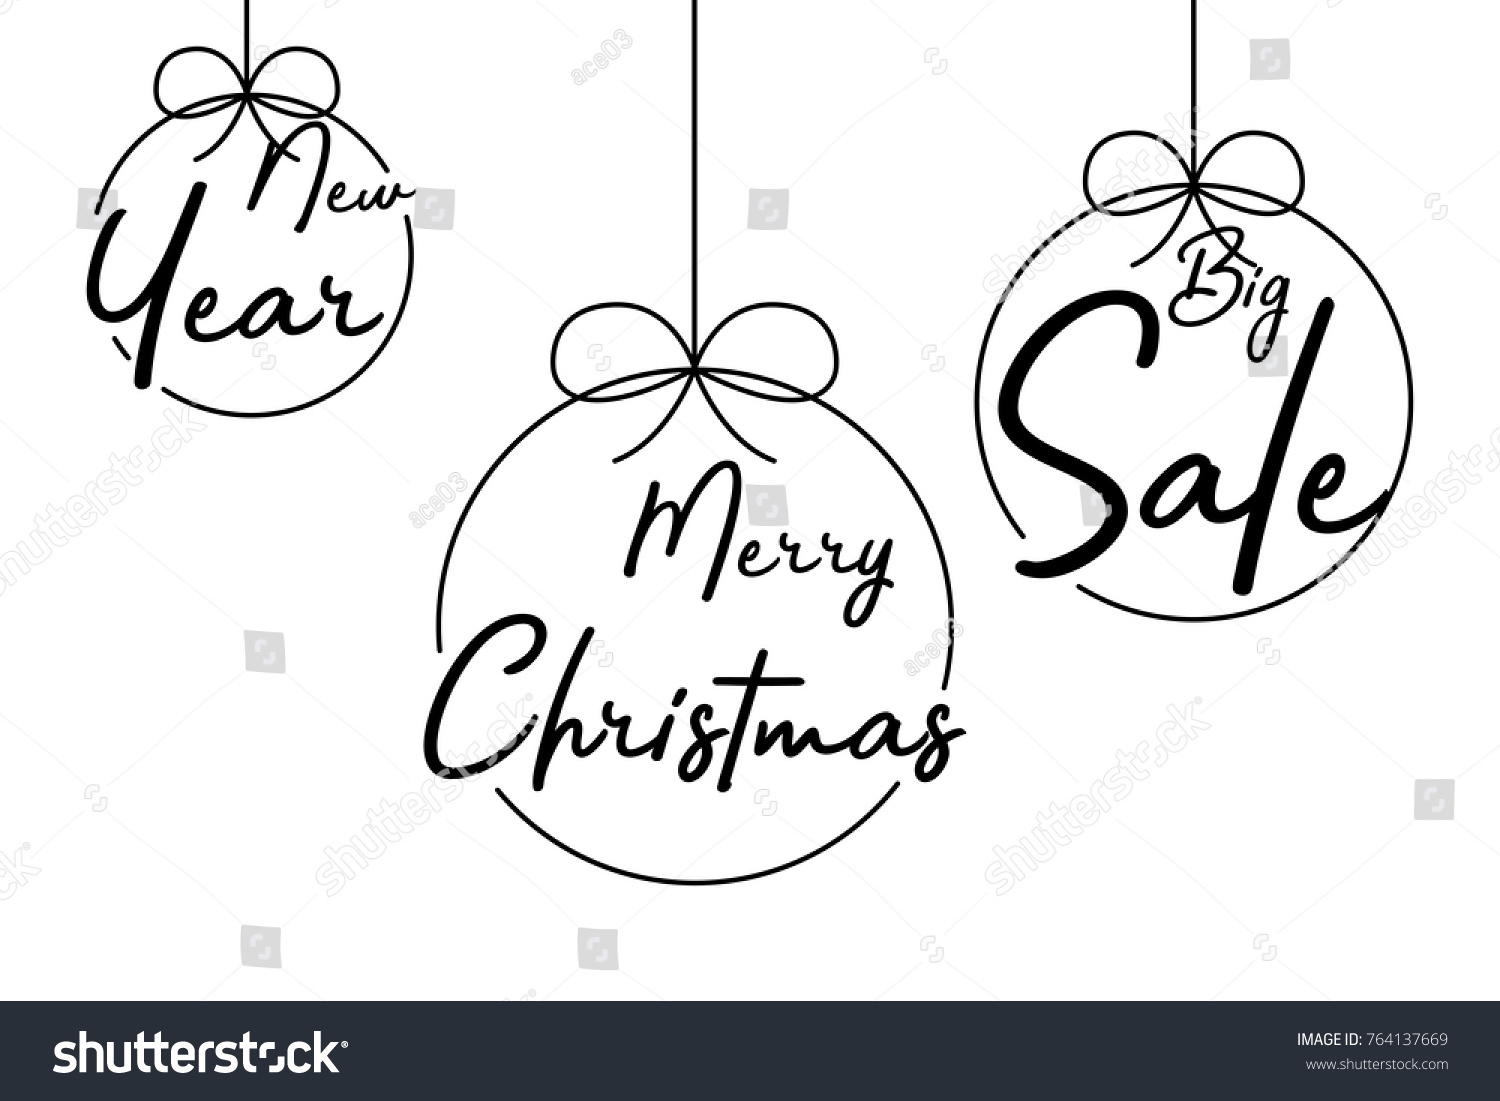 Christmas balls happy christmas new year stock vector 764137669 christmas balls happy christmas new year and big sales drawn by a marker pen kristyandbryce Images